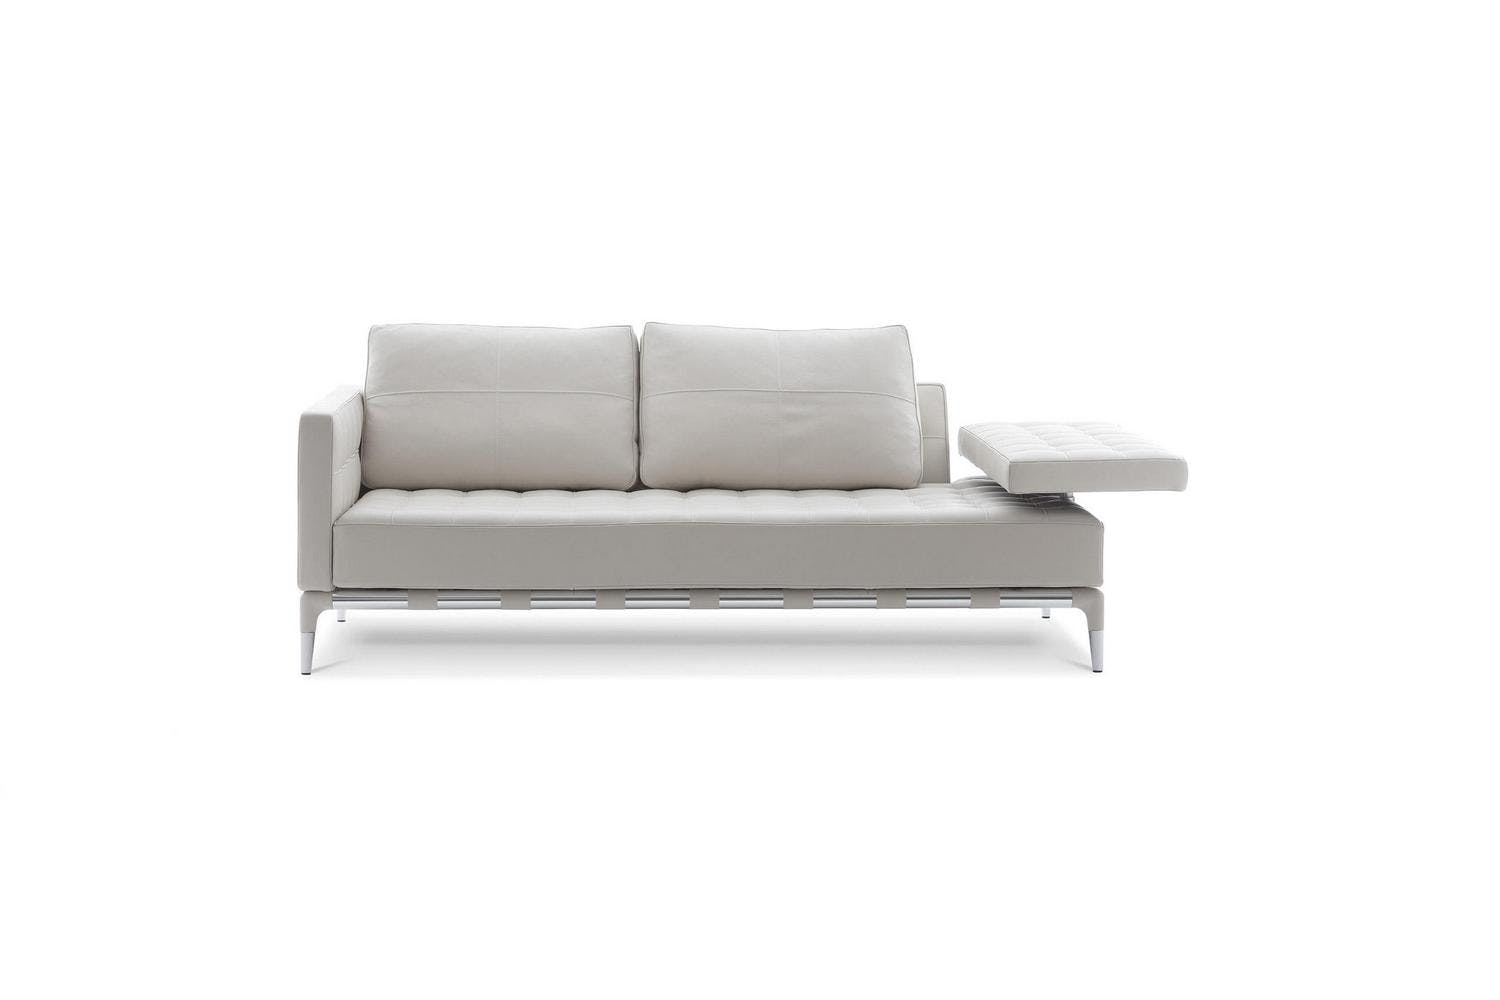 241 prive sofa by philippe starck for cassina | space furniture - Chaise Longue Philippe Starck